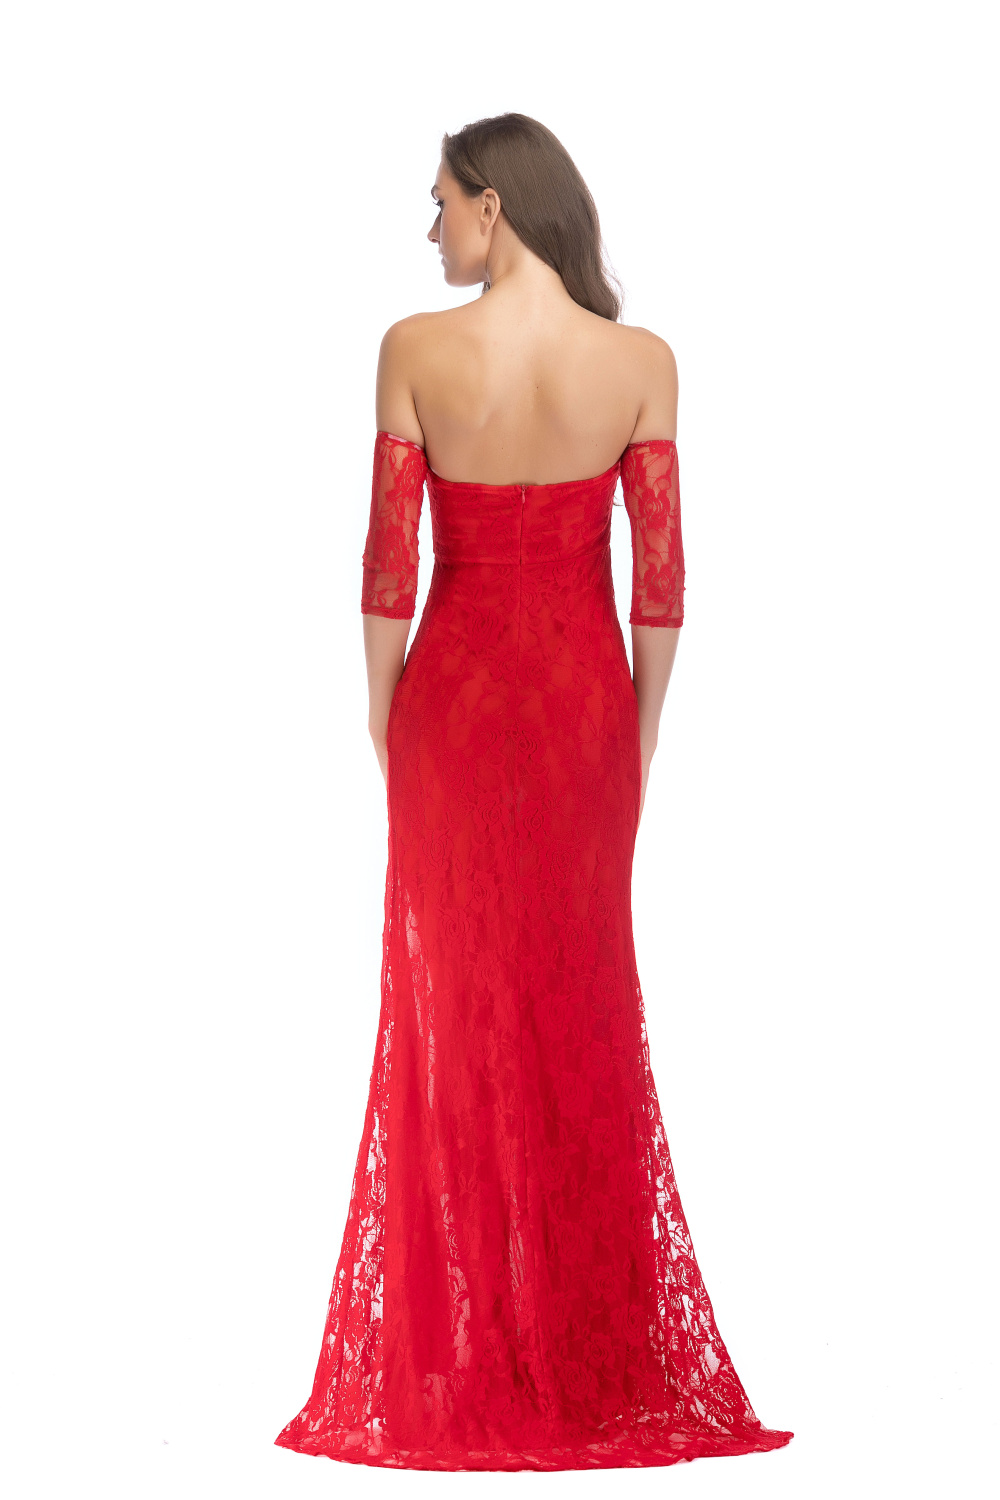 Sexy Red black Lace Off Shoulder summer dress women Strapless Night club queen party dresses elegant vestido bodycon maxi dress in Dresses from Women 39 s Clothing